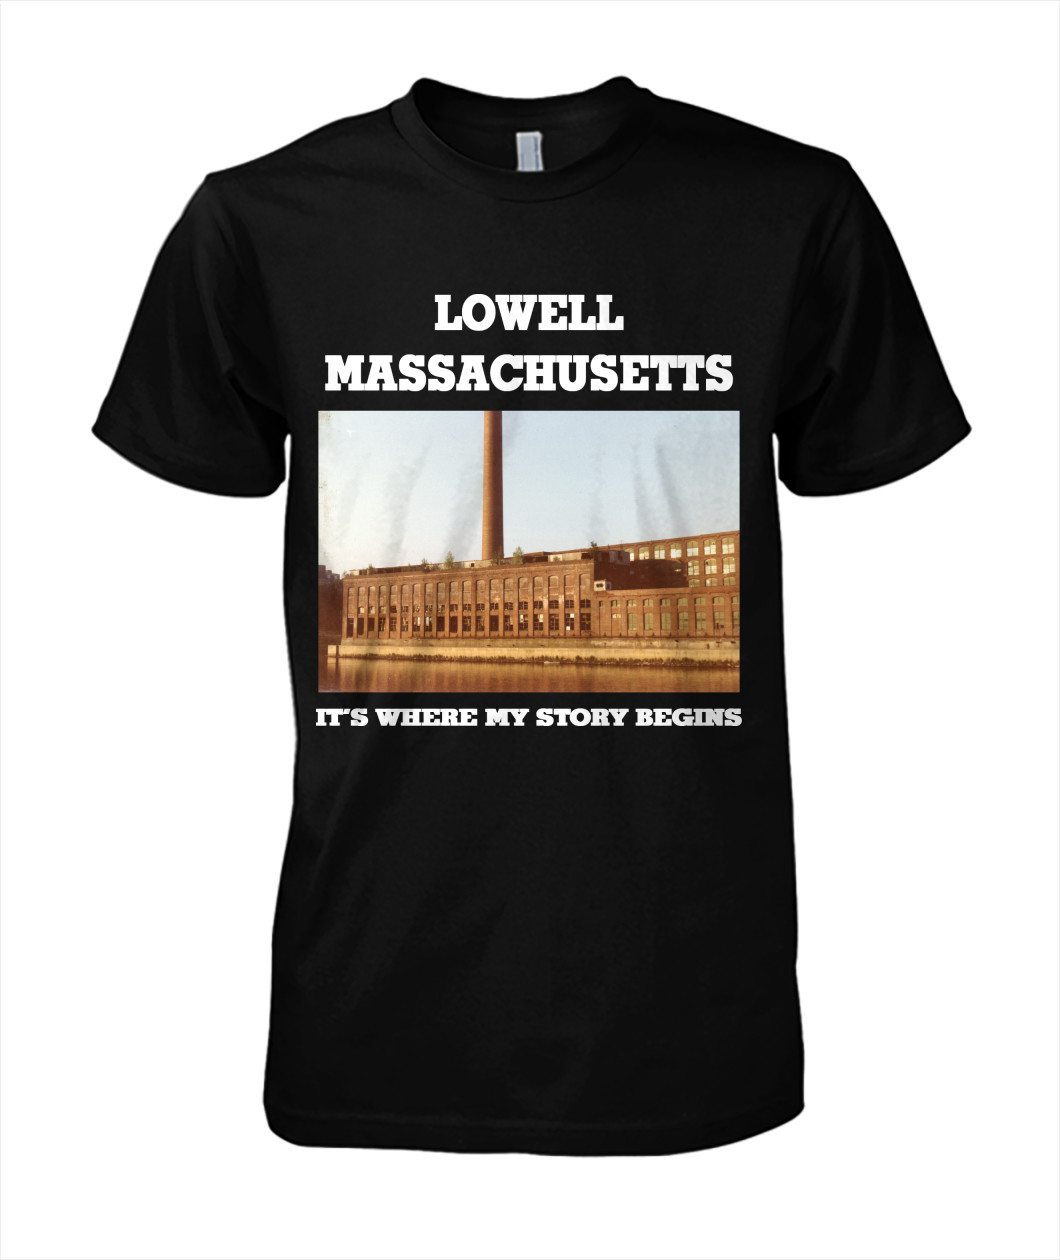 Lowell MA my story begins shirt